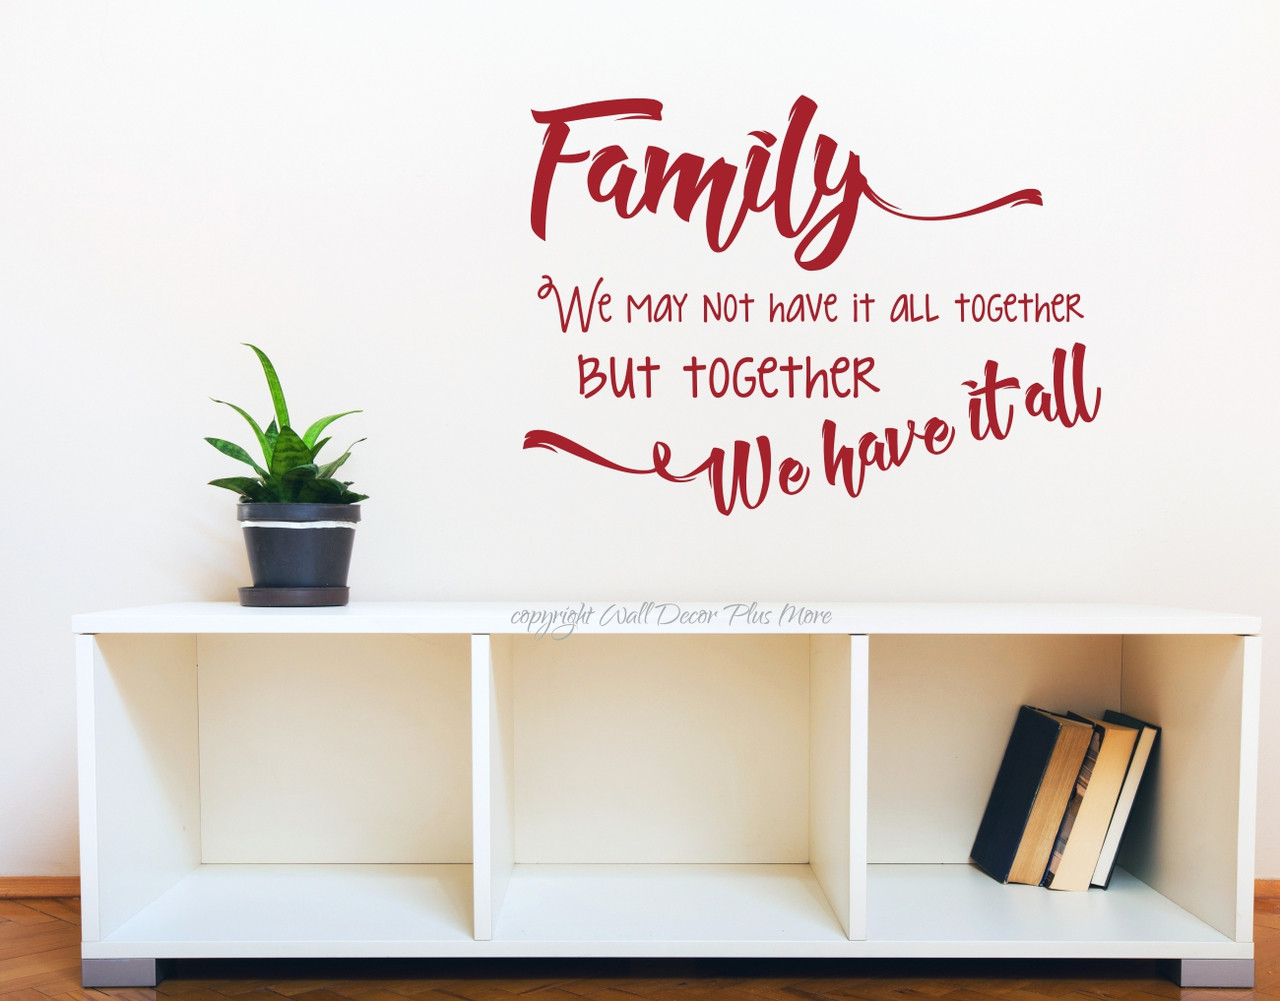 Family Together We Have it All Vinyl Wall Decal Saying For Family Room Decor  sc 1 st  Wall Decor Plus More & Family Together We Have it All Vinyl Wall Decal Saying For Family ...